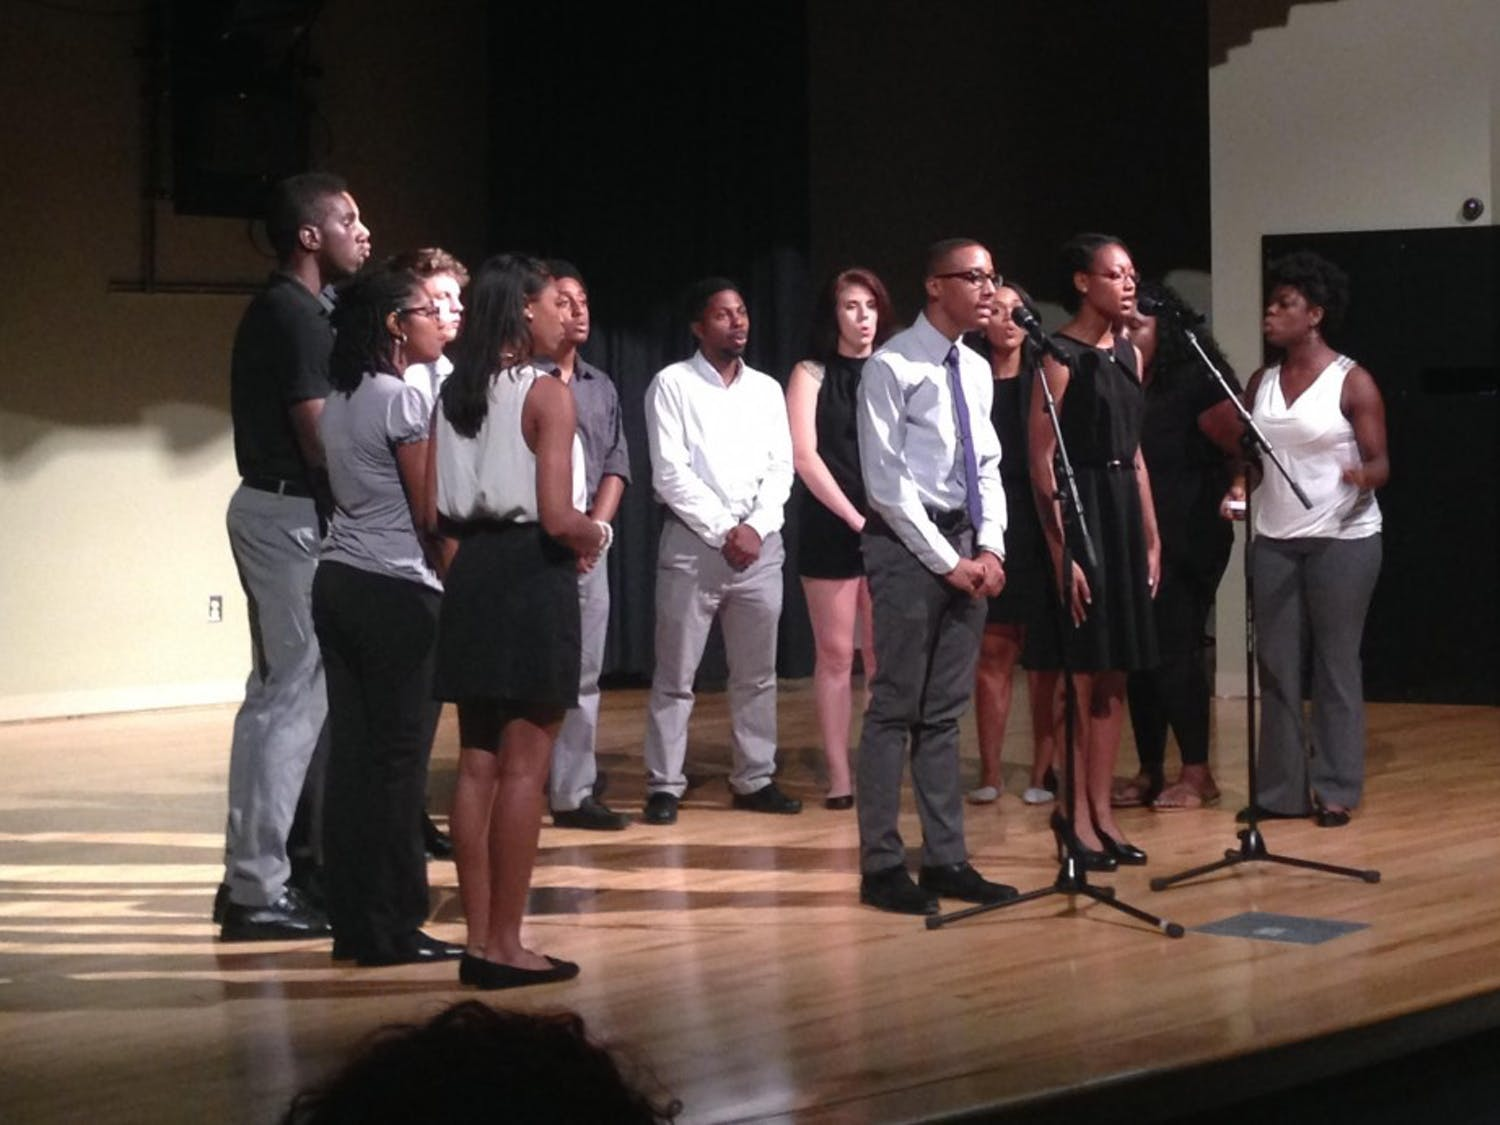 The Harmonyx, a sub group of the Black Student Movement, performs as a part of a BSM meeting.